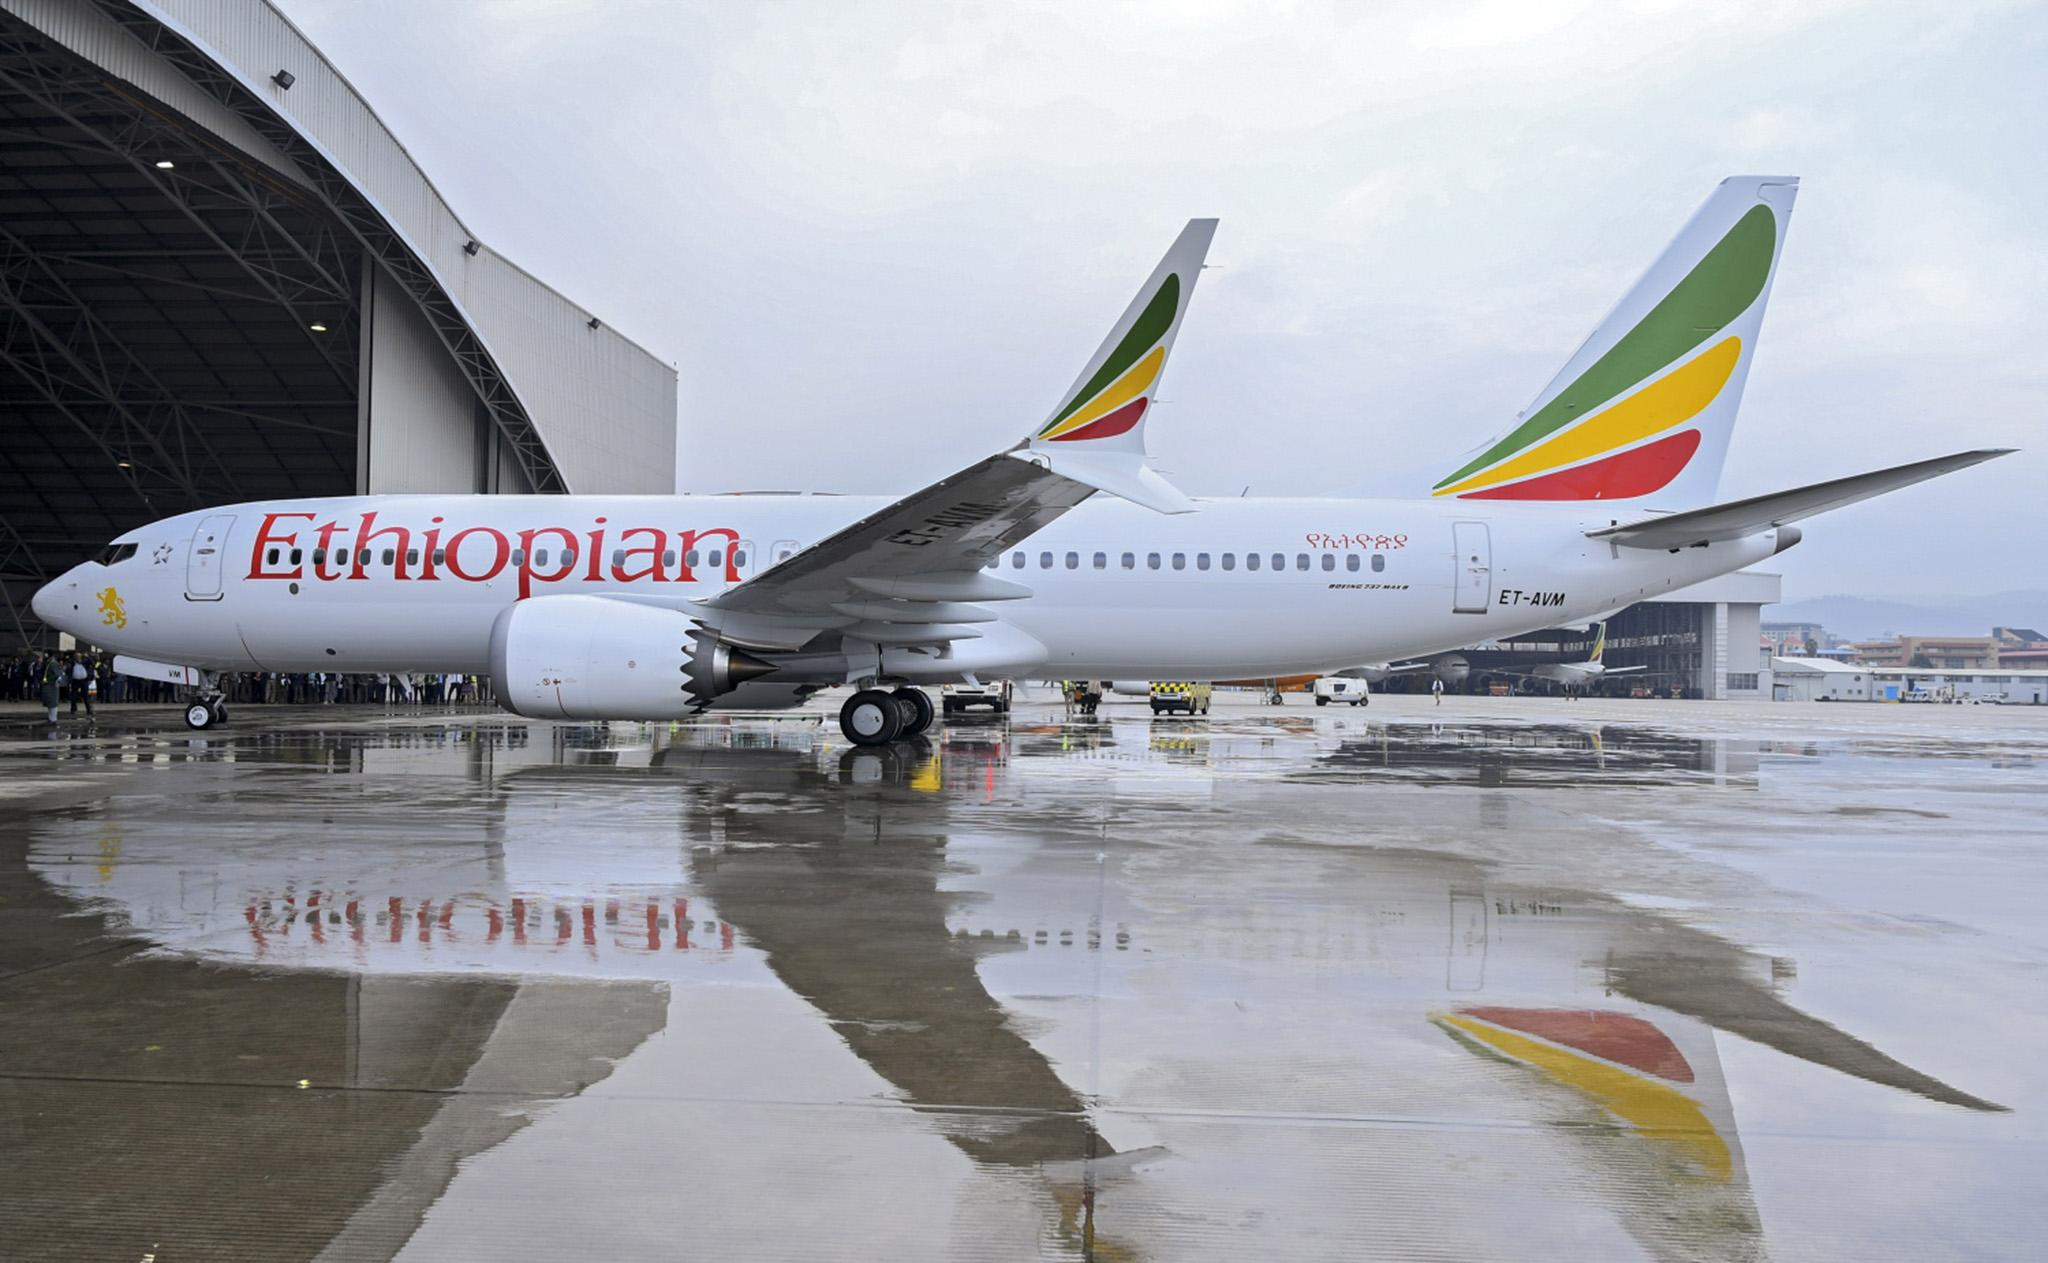 Boeing 737 MAX 8: Two pilots reported planes spontaneously